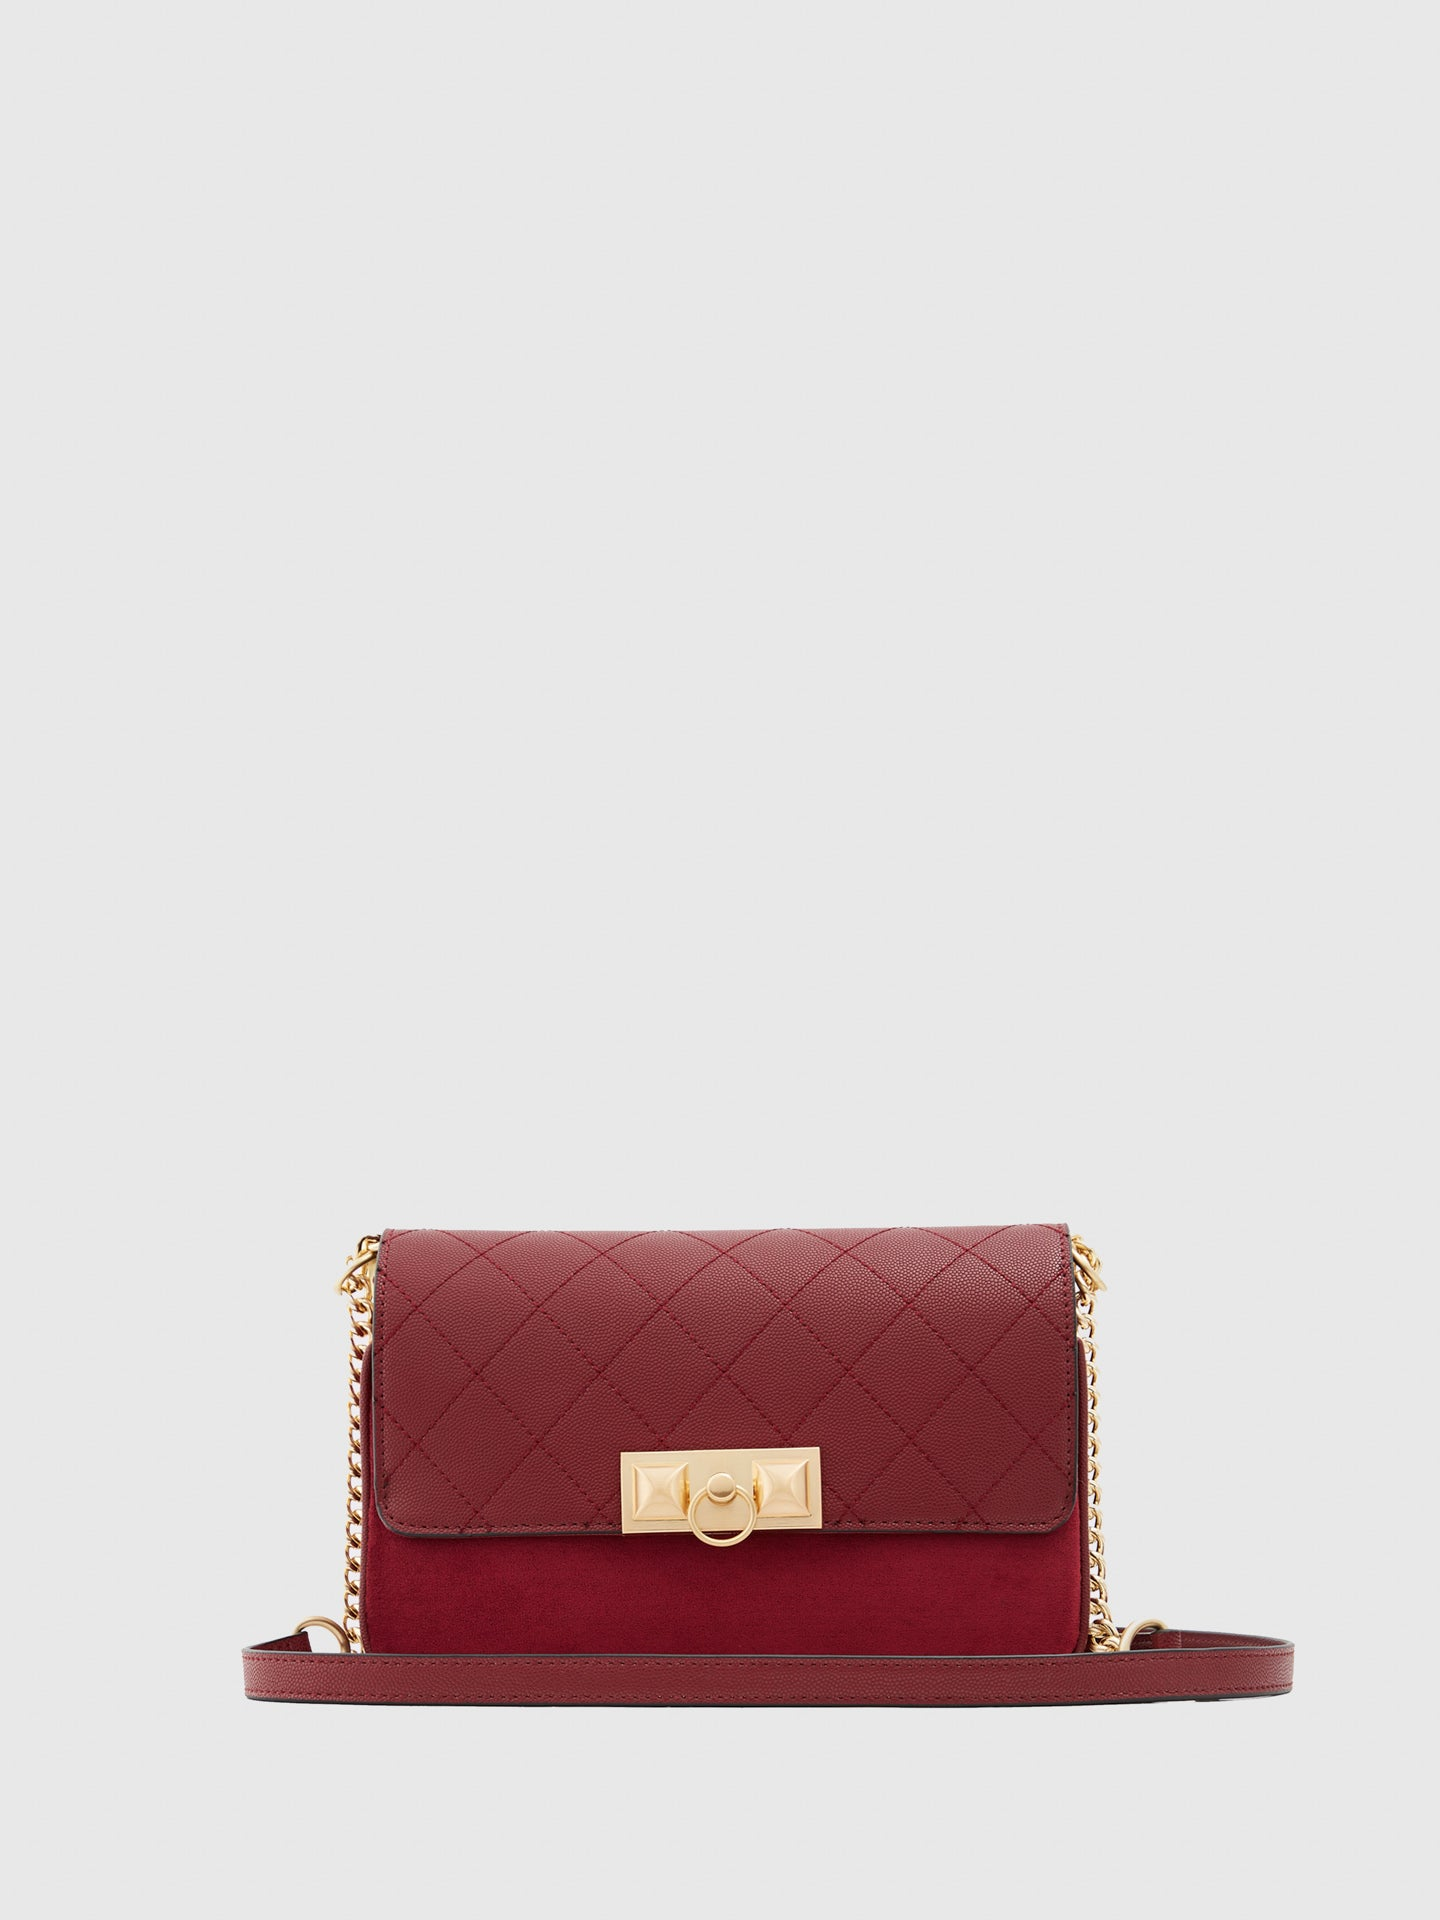 Aldo Red Crossbody Bag